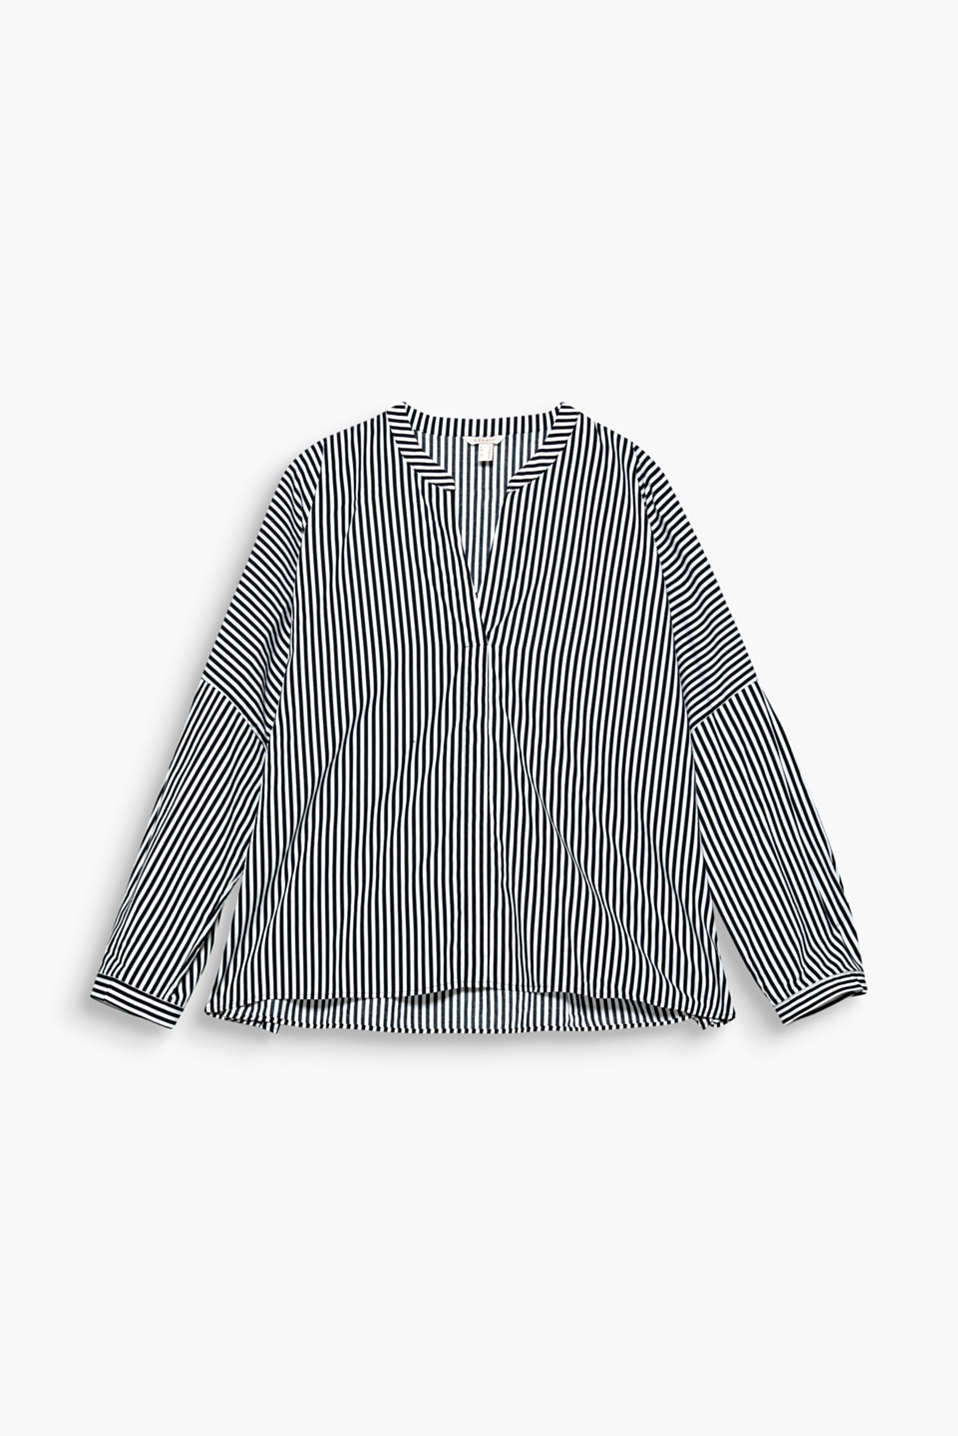 A super-wide, oversized design and trendy stripes turn this cotton blouse into an it-piece!